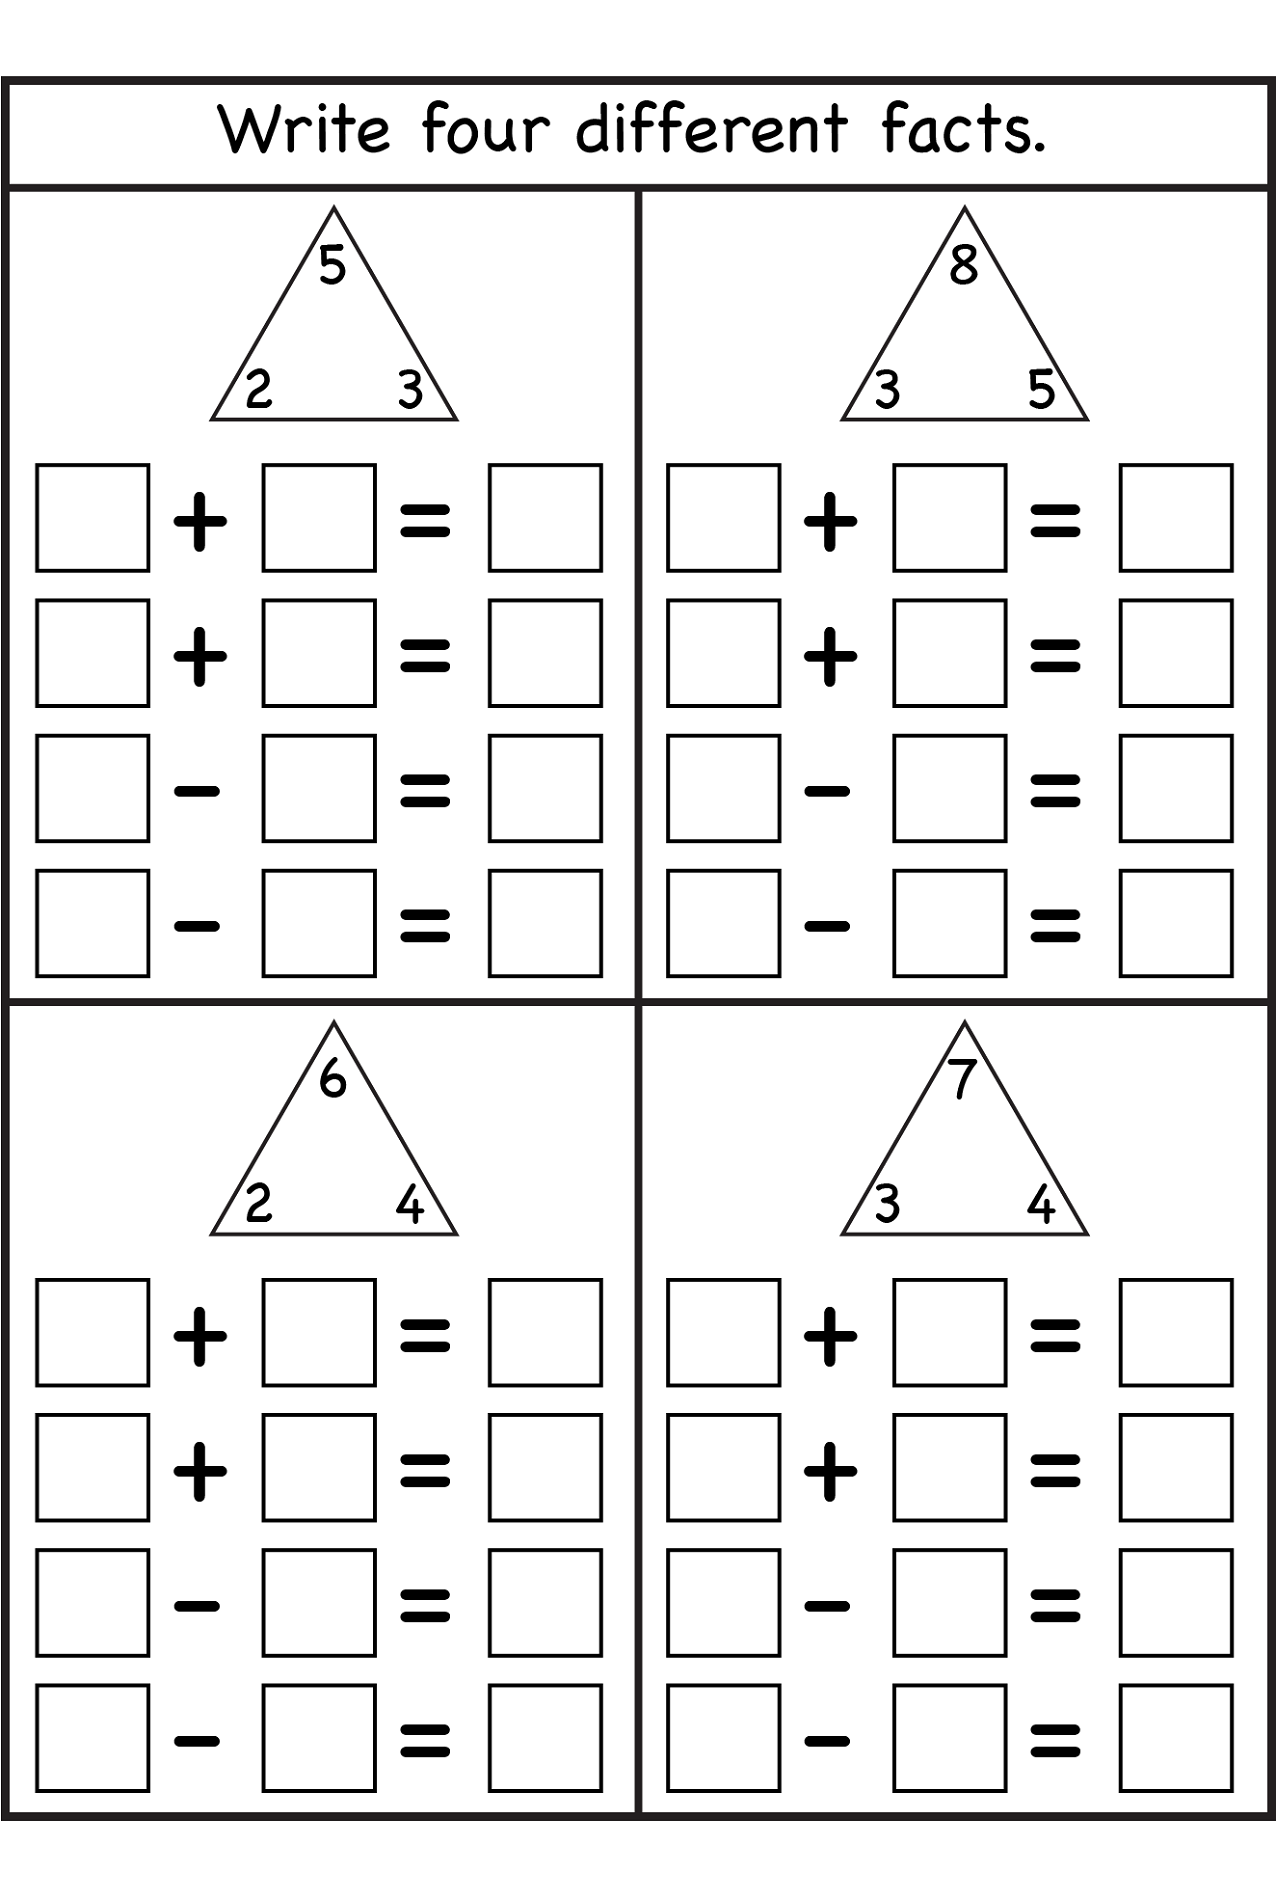 blank-fact-family-worksheets-printable  St Grade Math Worksheets Addition And Subtraction on combo practice, for kindergarten, single digit, 5th grade, for grage 4, large print,